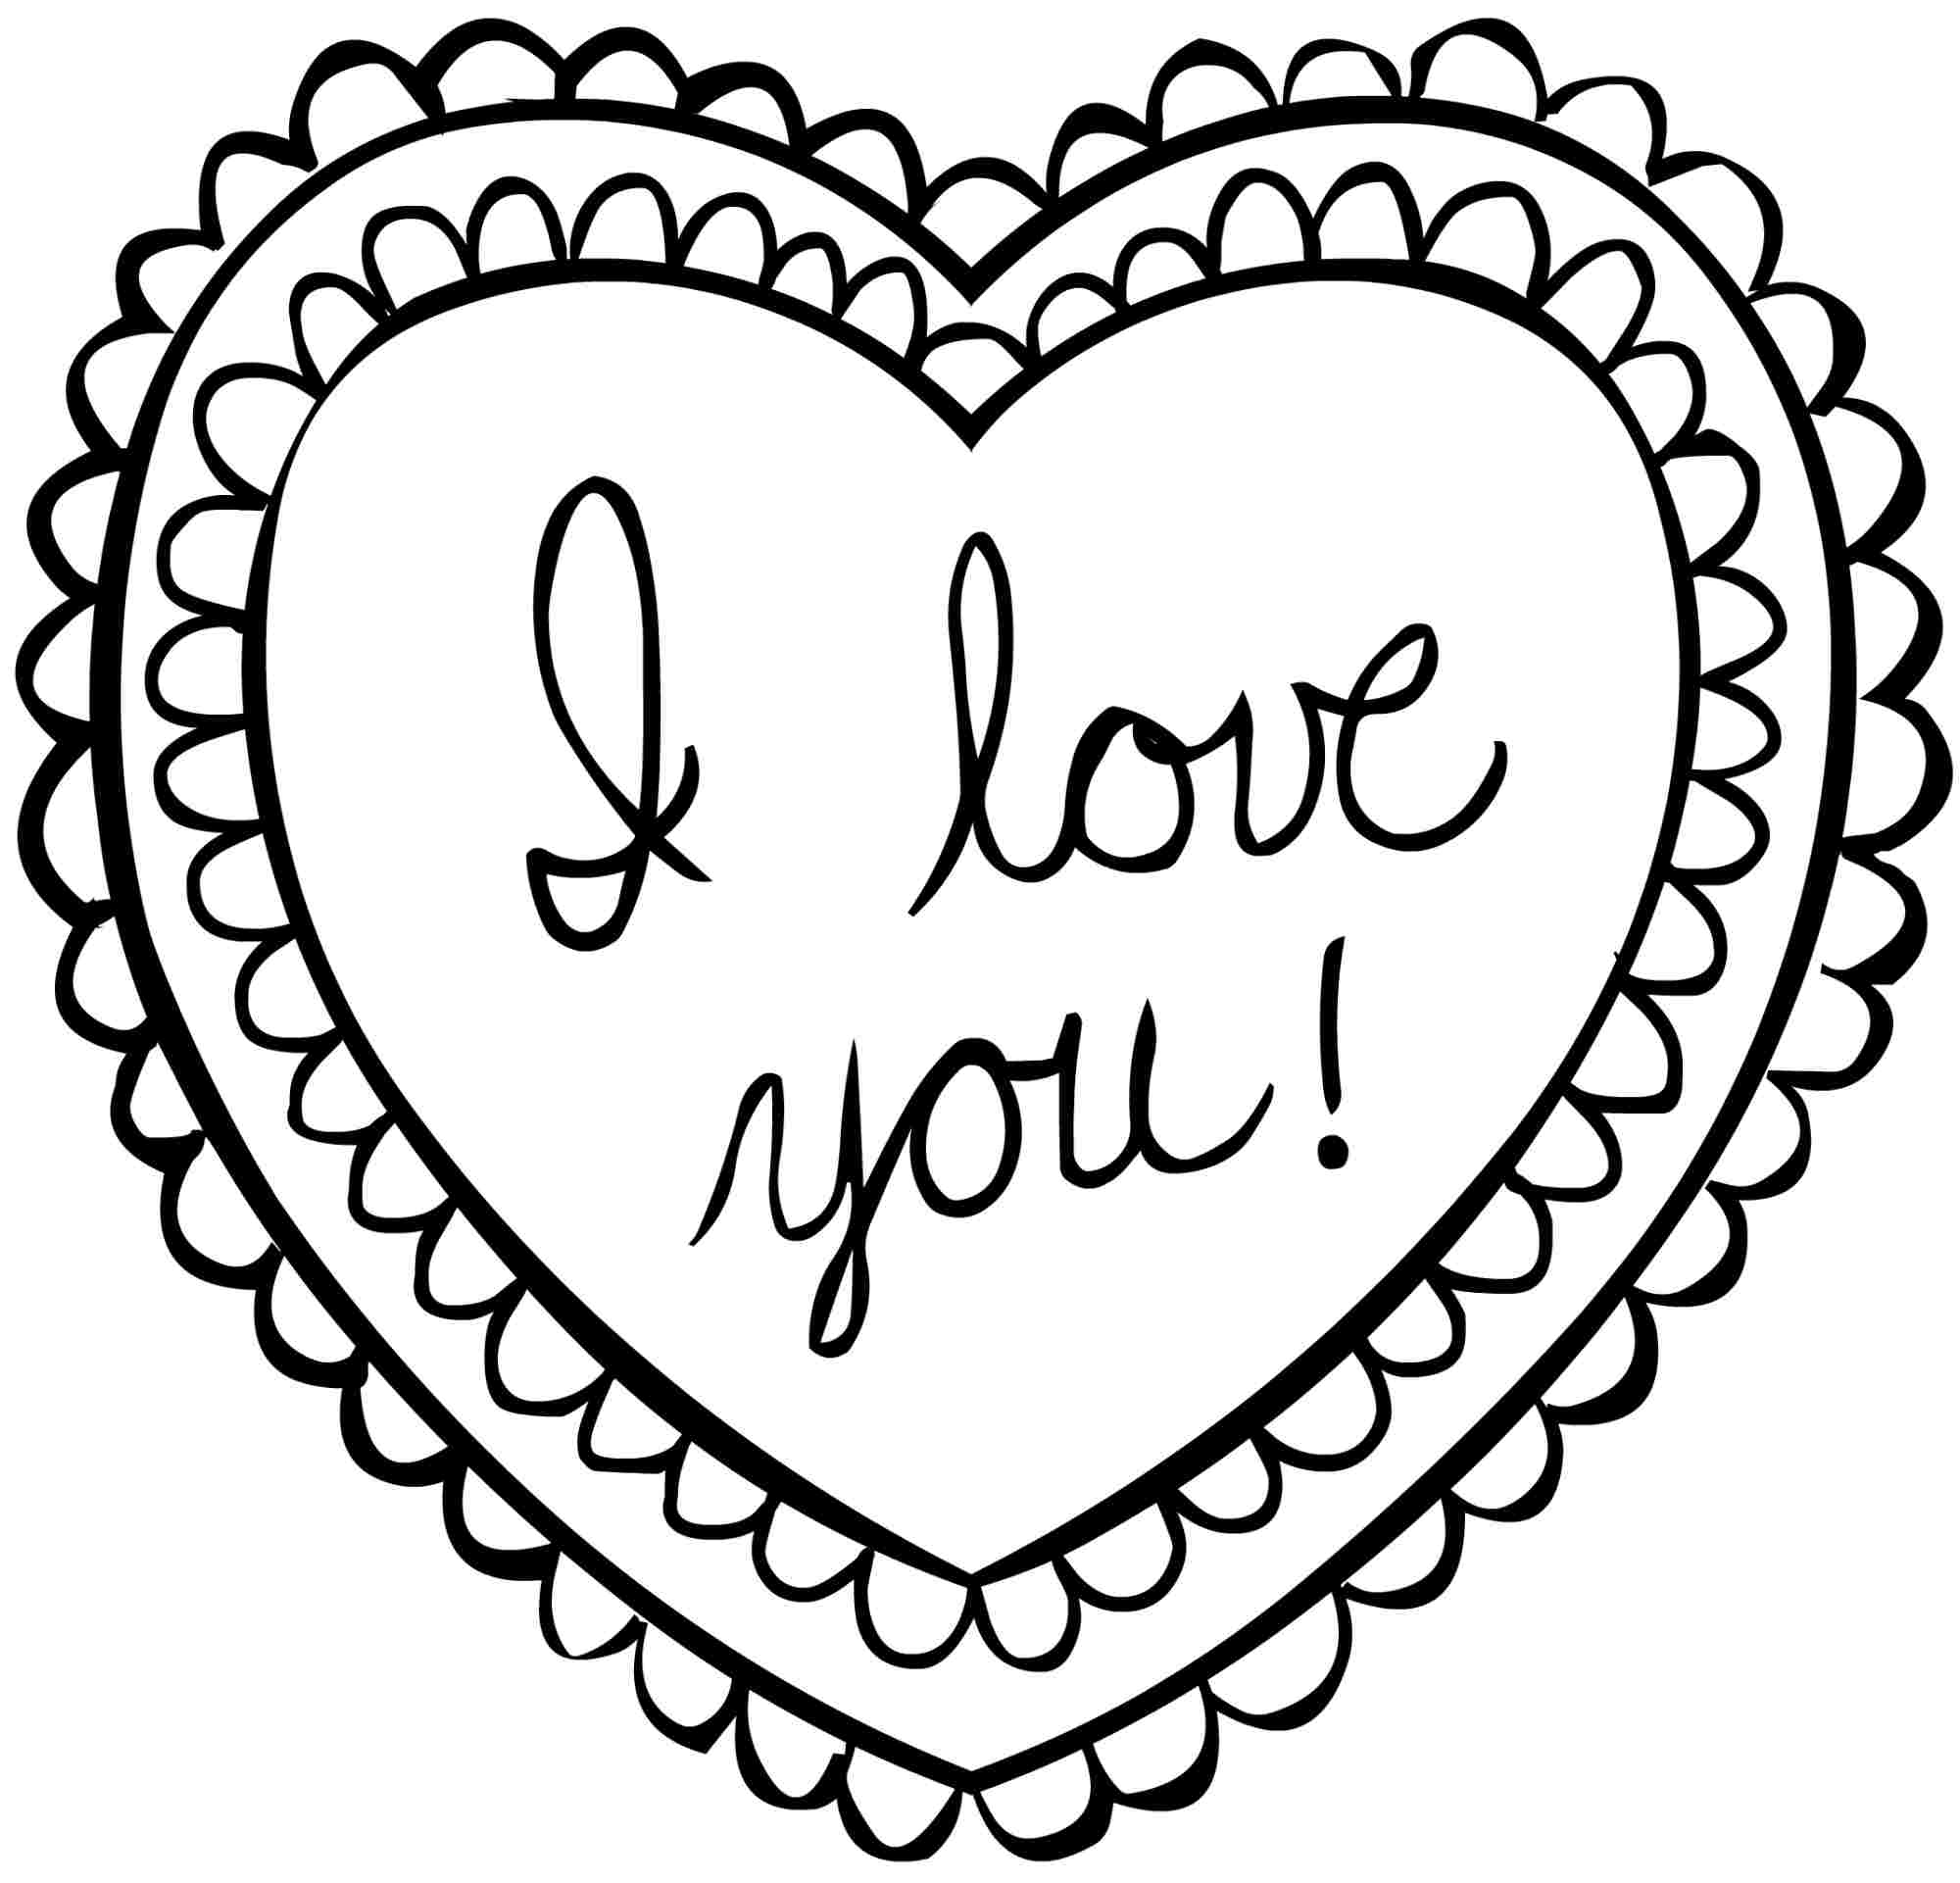 Cute Coloring Pages For Your Boyfriend Coloring Home Pictures To Color For Your Boyfriend Free